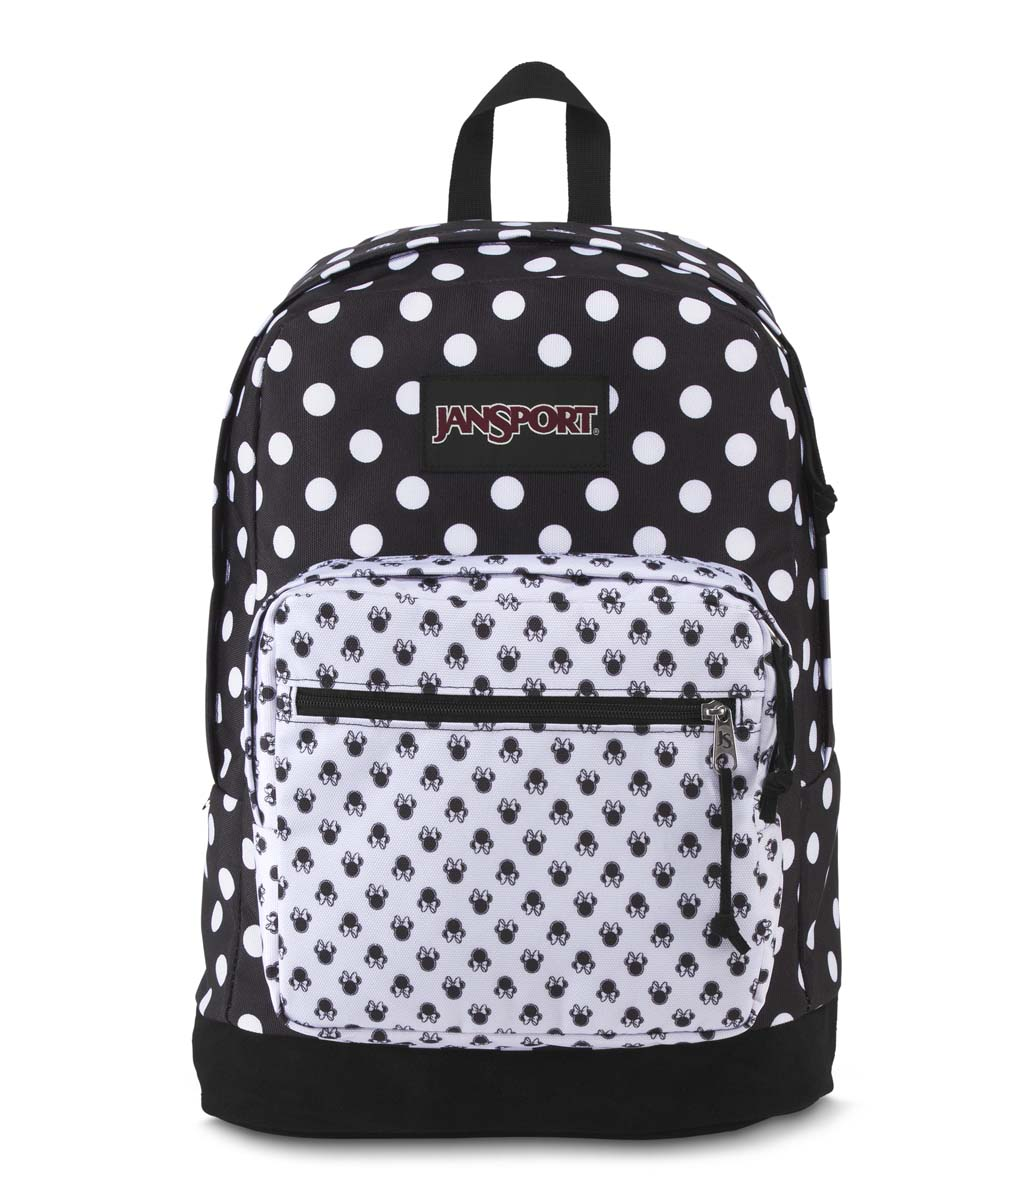 JanSport กระเป๋าเป้ รุ่น DISNEY RIGHT PACK EXPRSNS - DISNEYMINNIEBLACKPOLKADOT